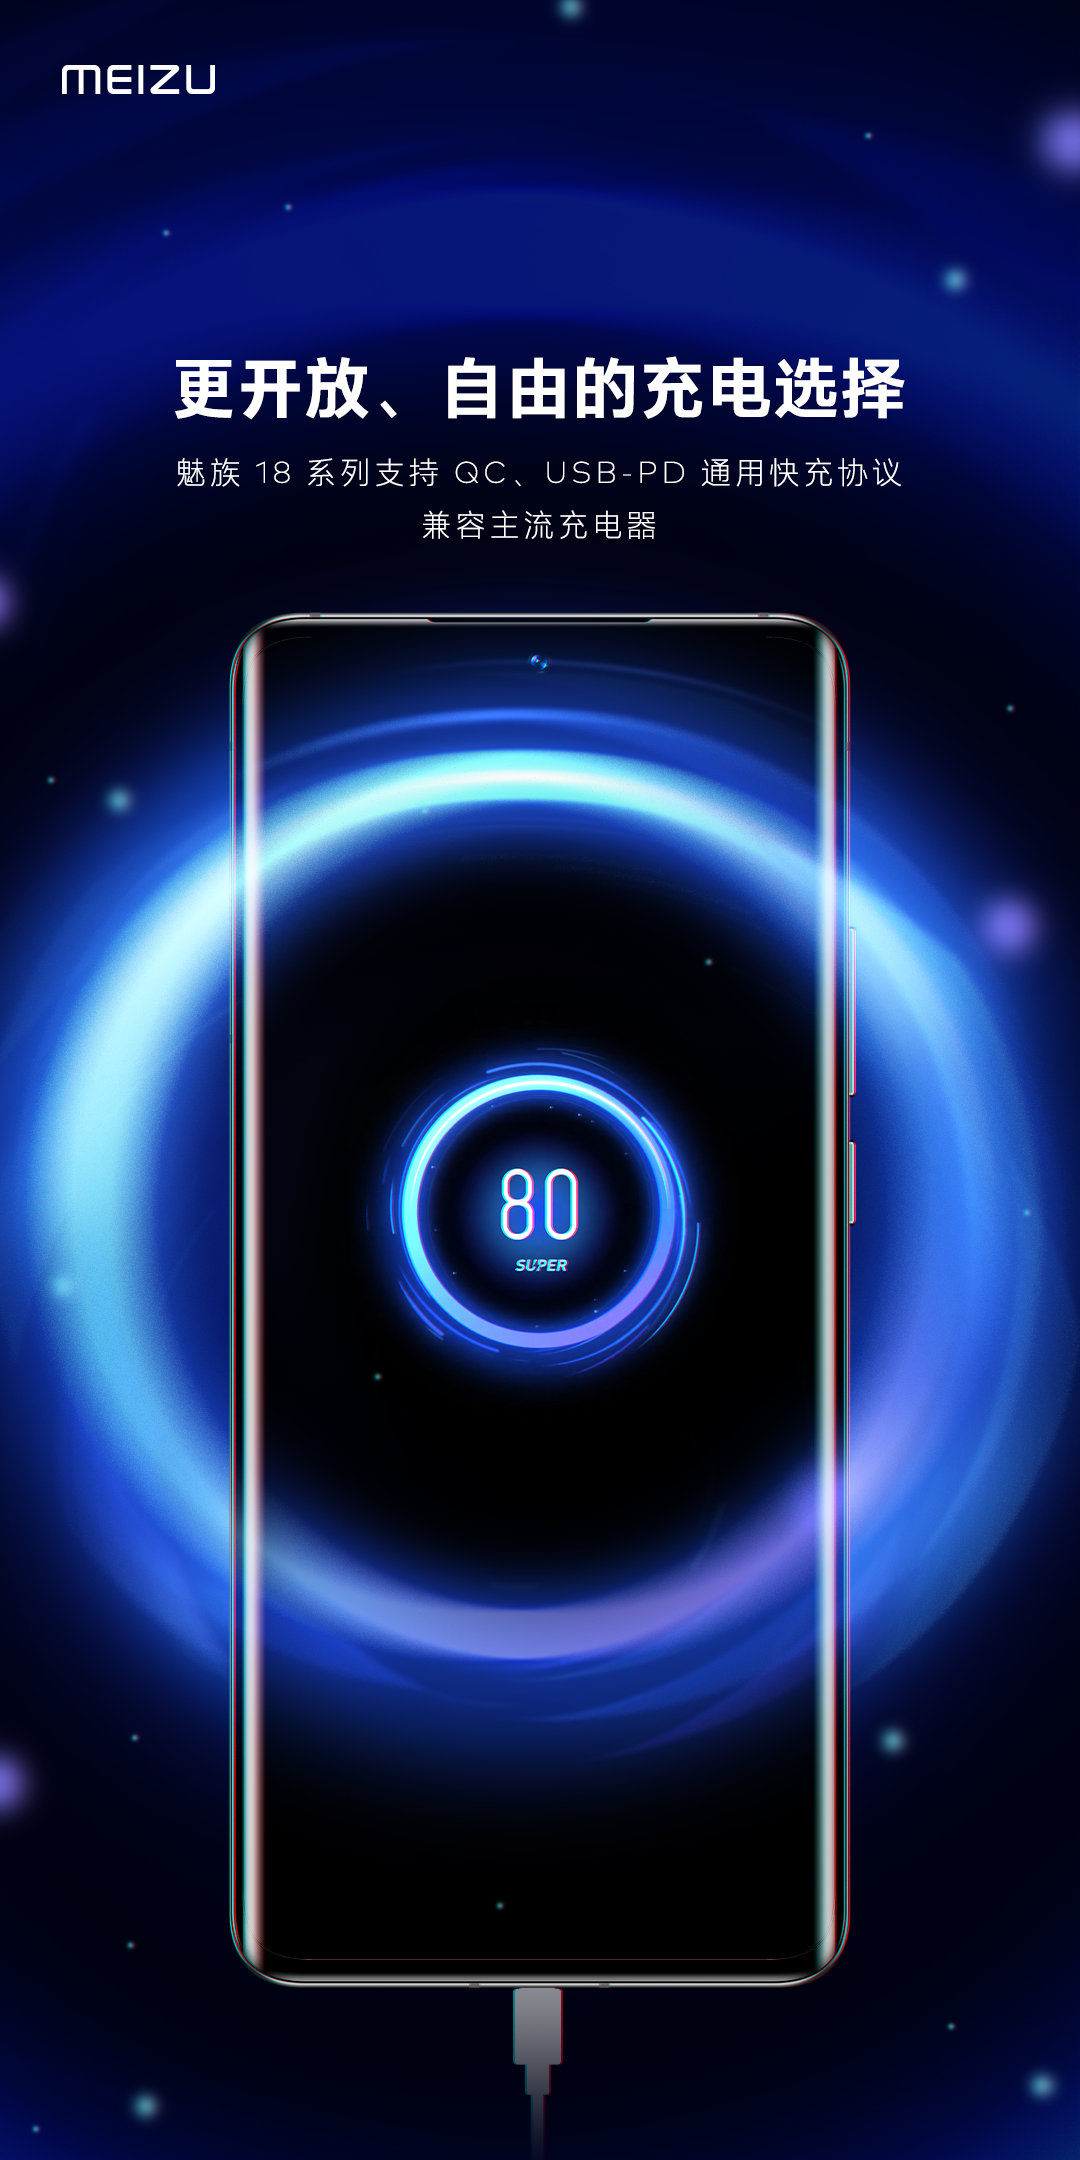 Meizu 18 Series Charging 80% 30 Minutes, Pro Brings Wireless Charging while Charger is Out-of-the-box